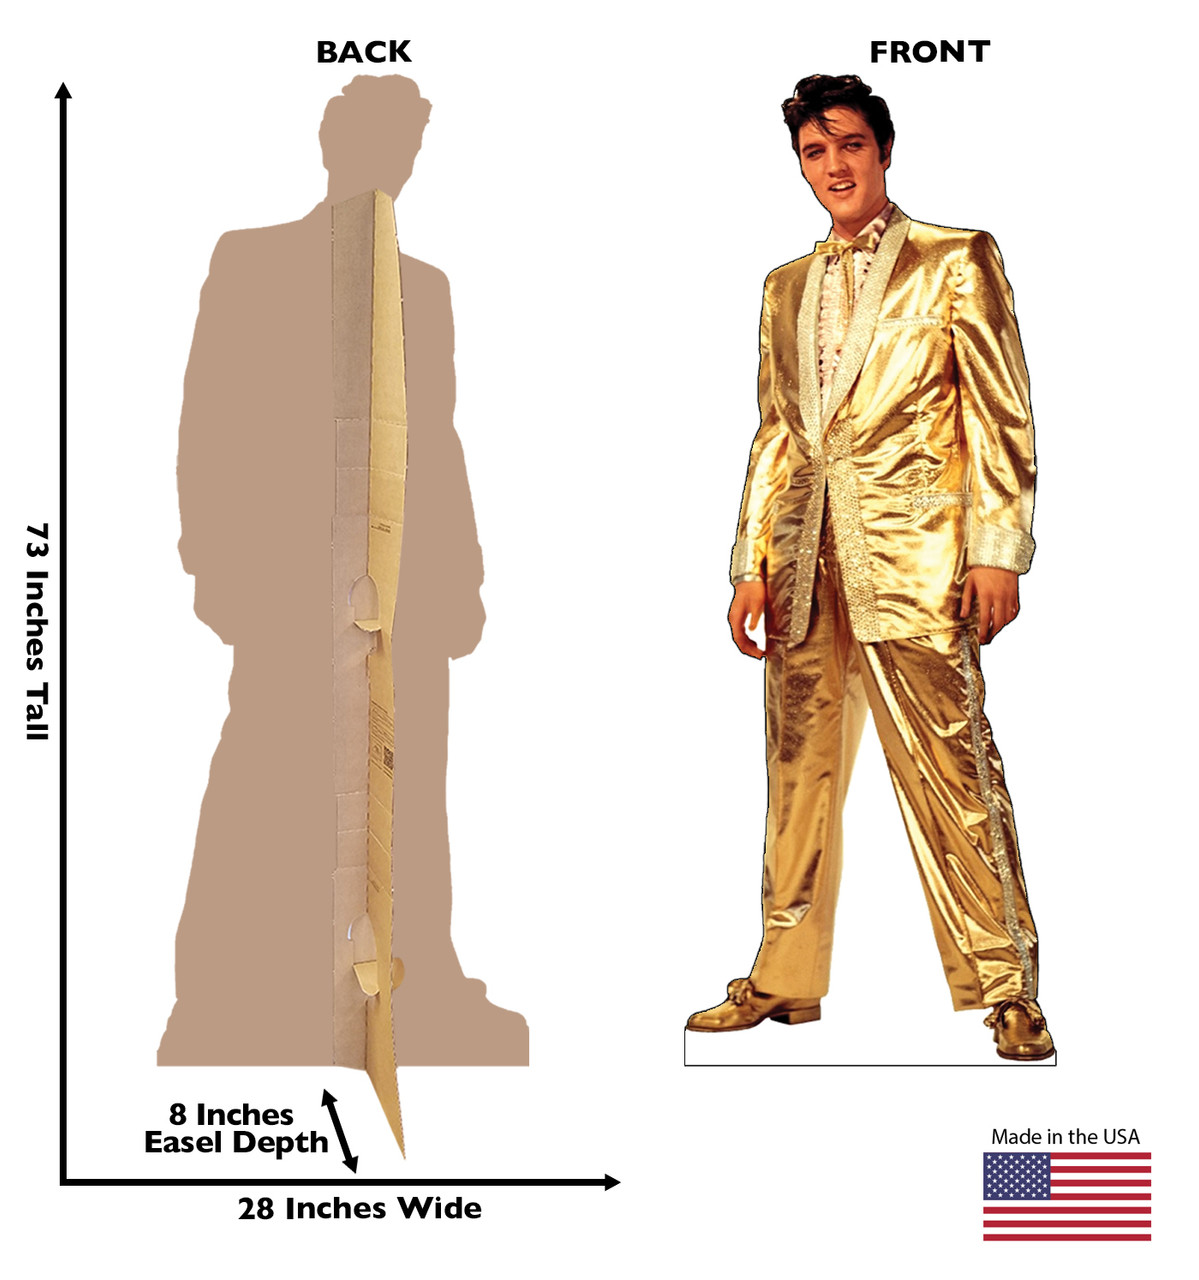 Elvis Presley Gold Suit Cardboard Cutout front and back